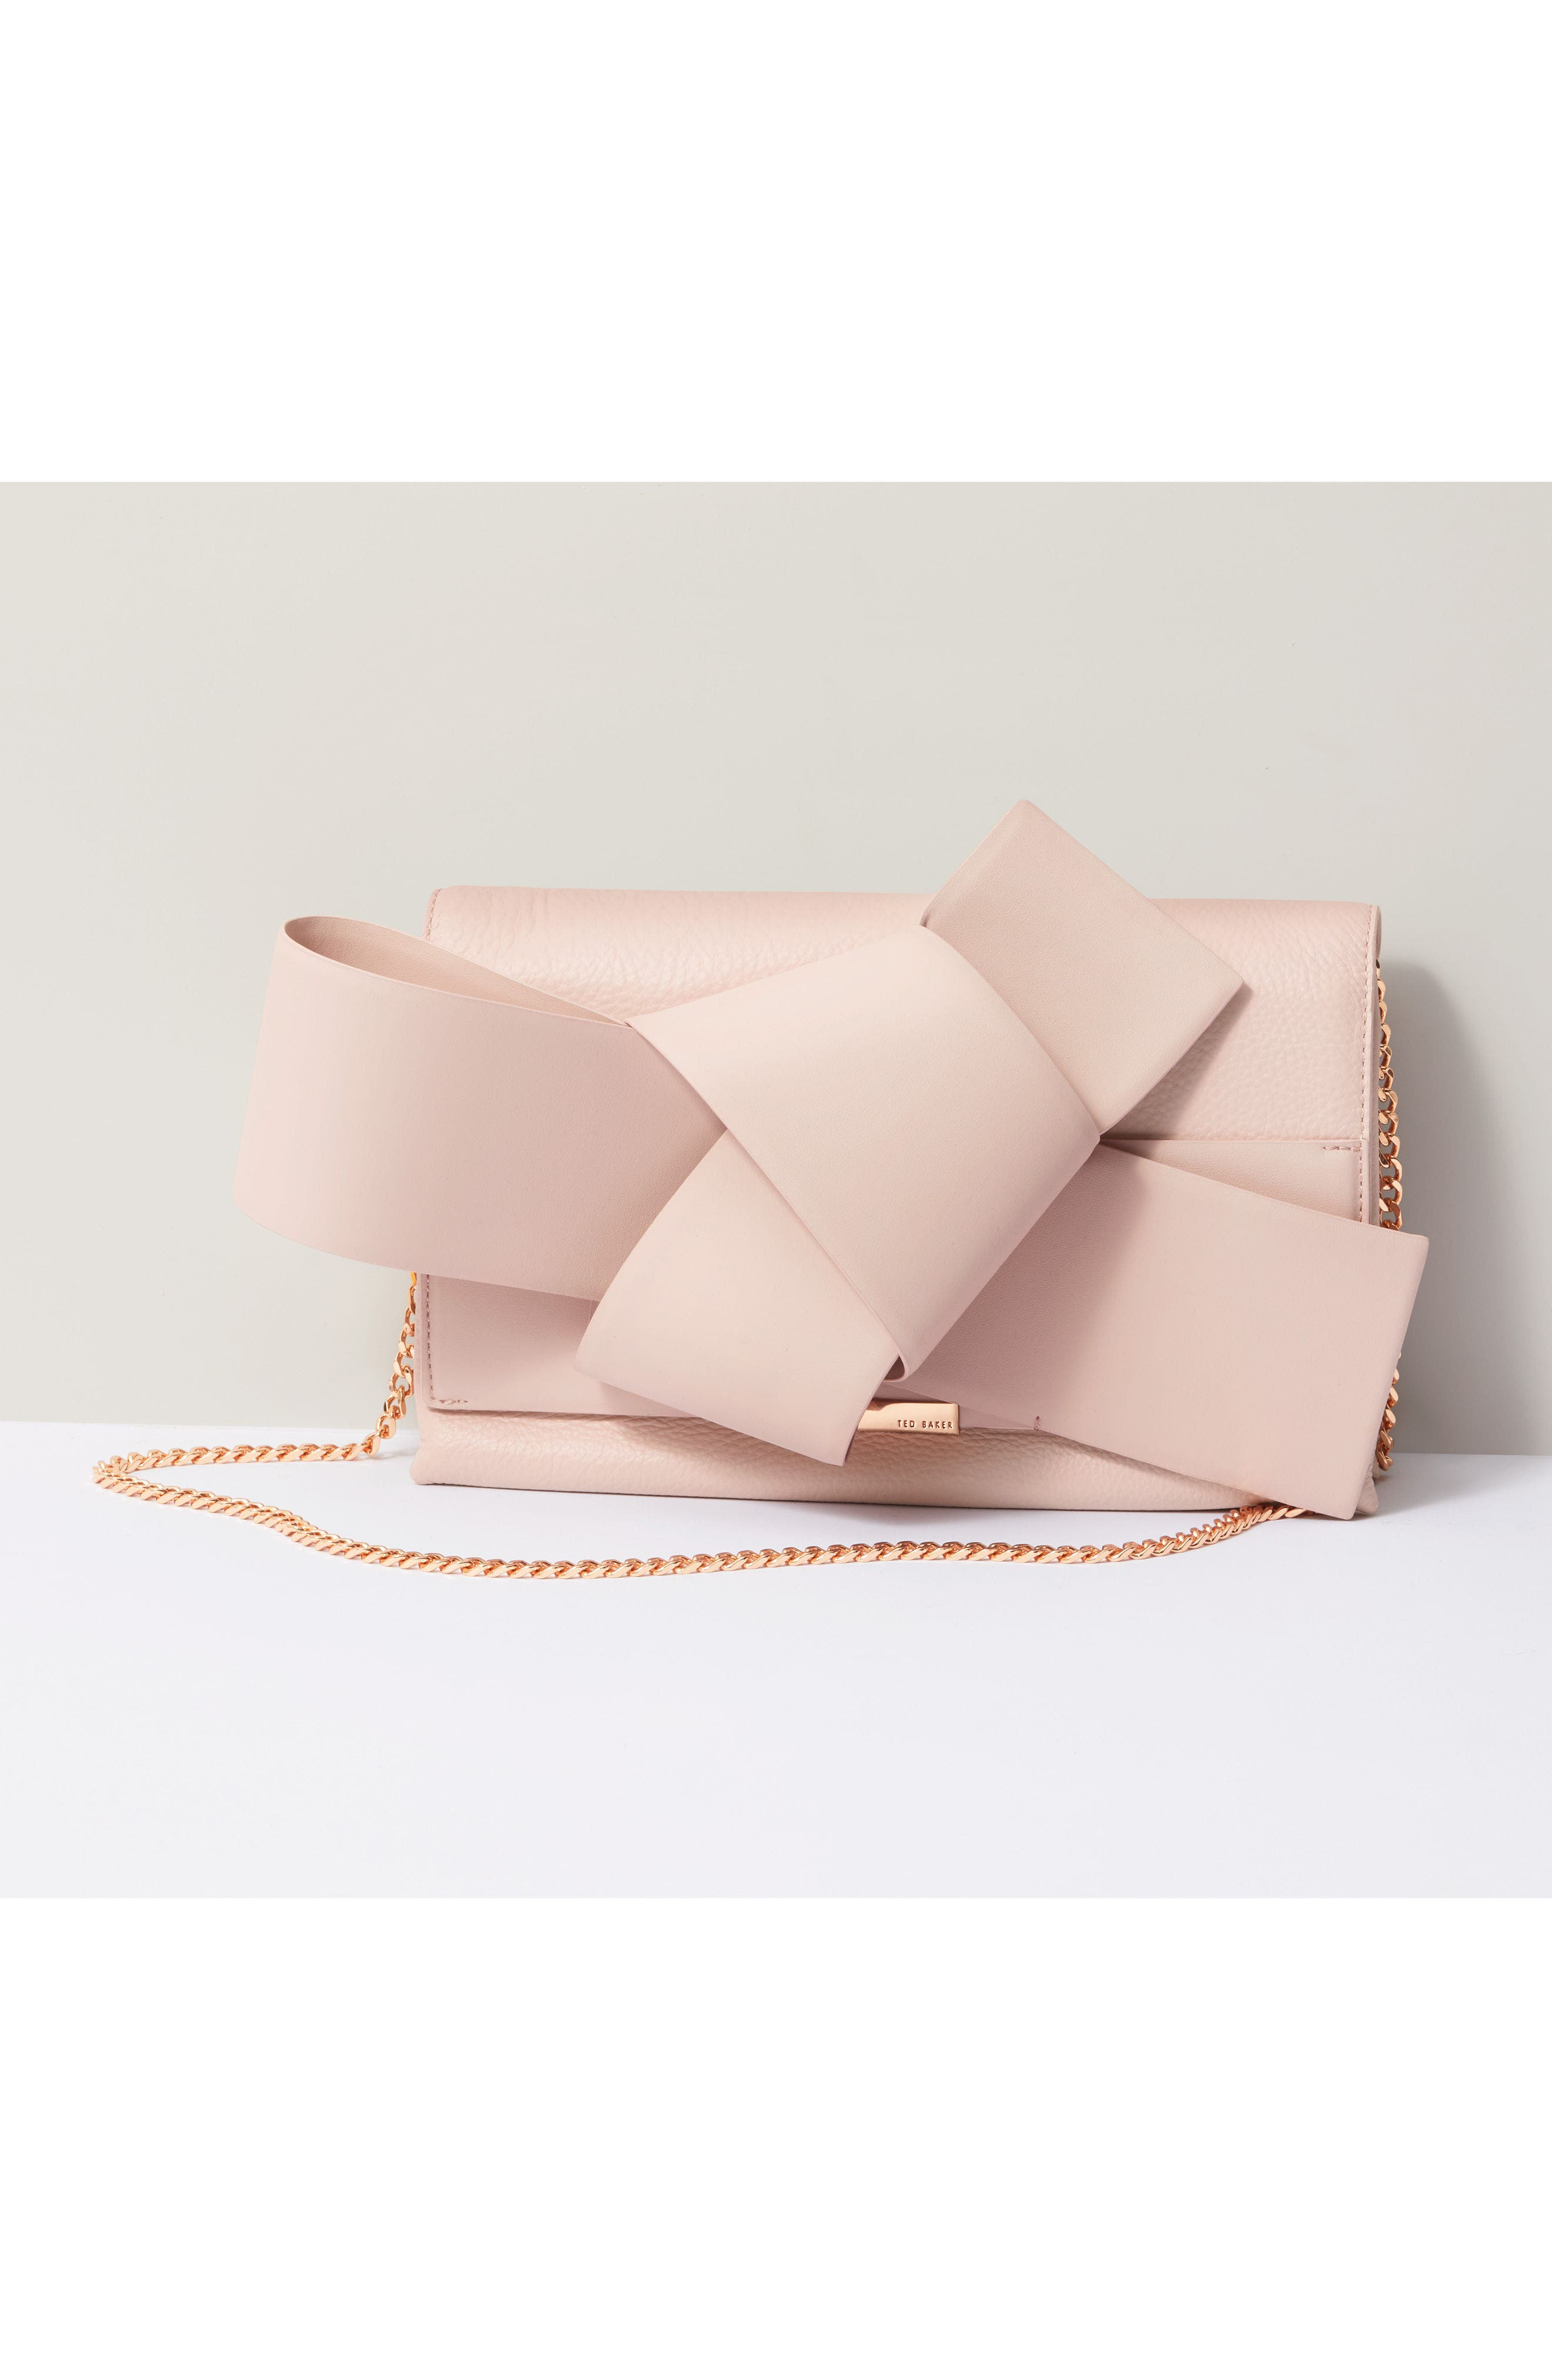 Knotted Bow Leather Clutch,                             Alternate thumbnail 8, color,                             001